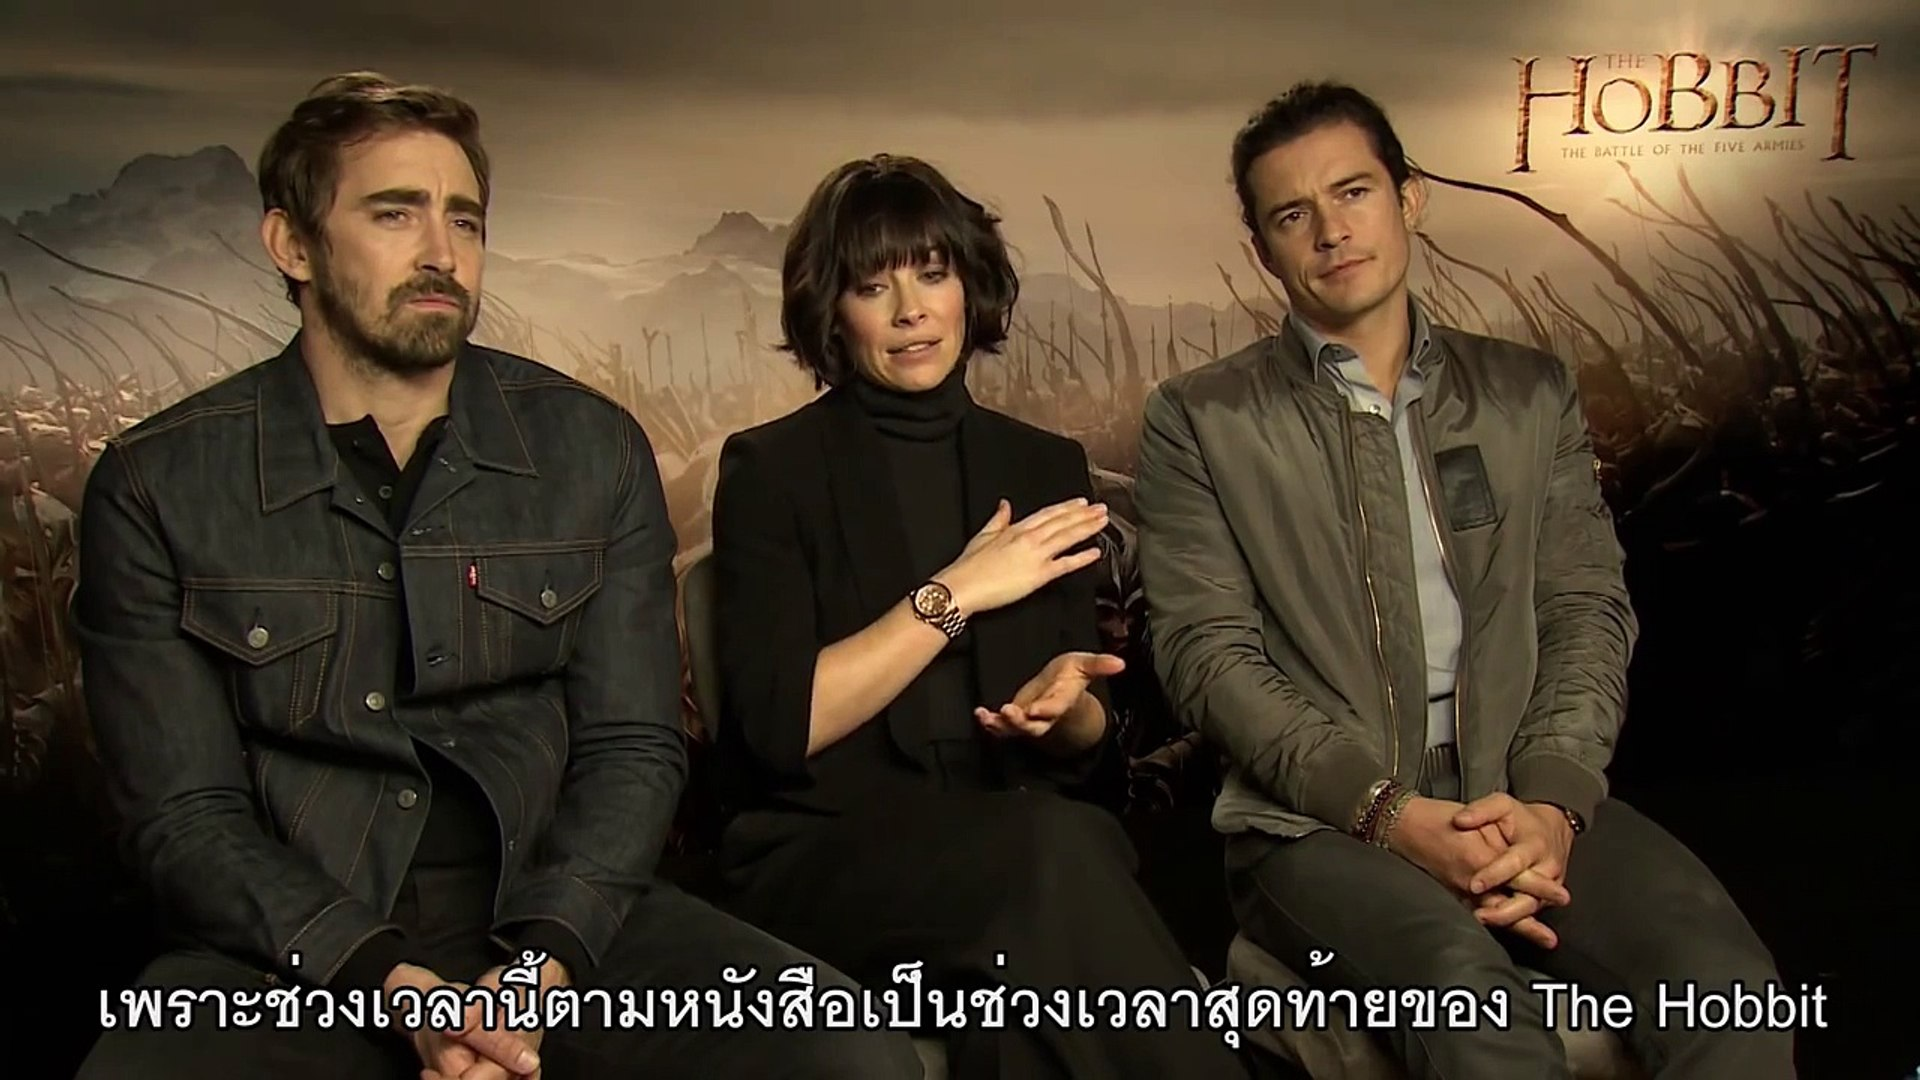 The Hobbit: The Battle of The Five Armies - Orlando Bloom, Evangeline Lilly Lee Pace (ซับไทย)